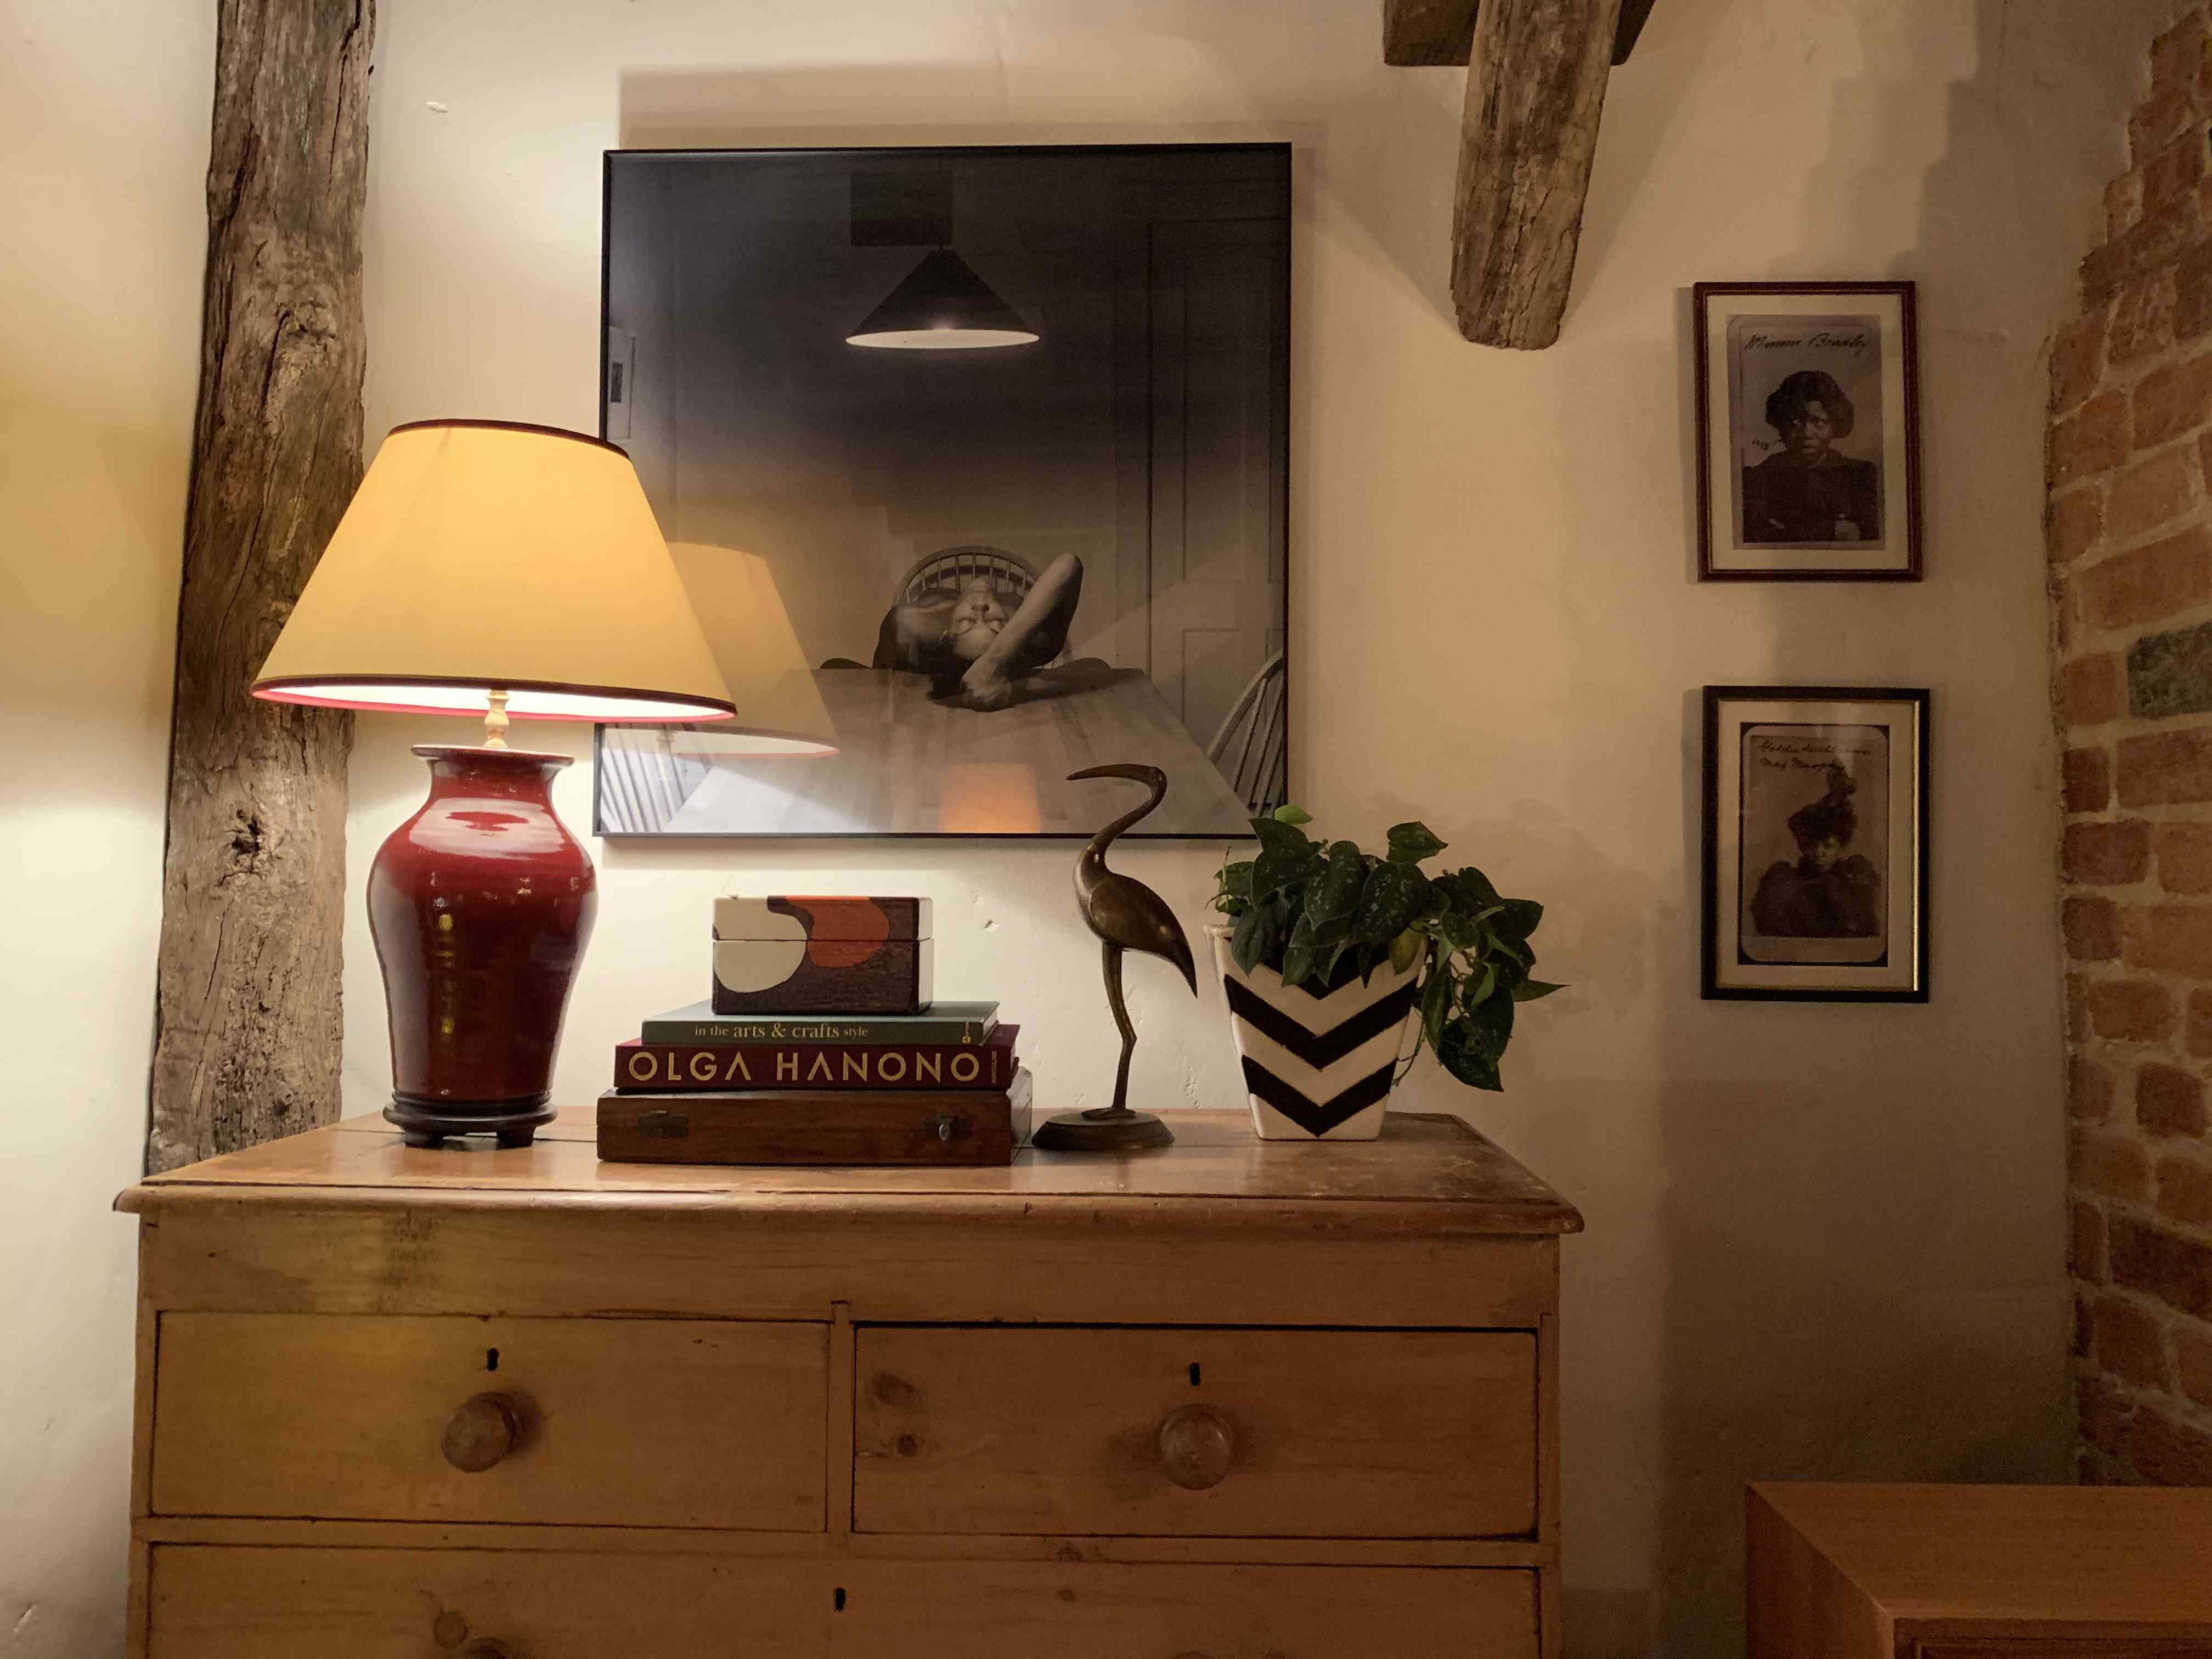 a chest on the set of Master of None features a lamp, books, a statue, art, and exposed wood and beams